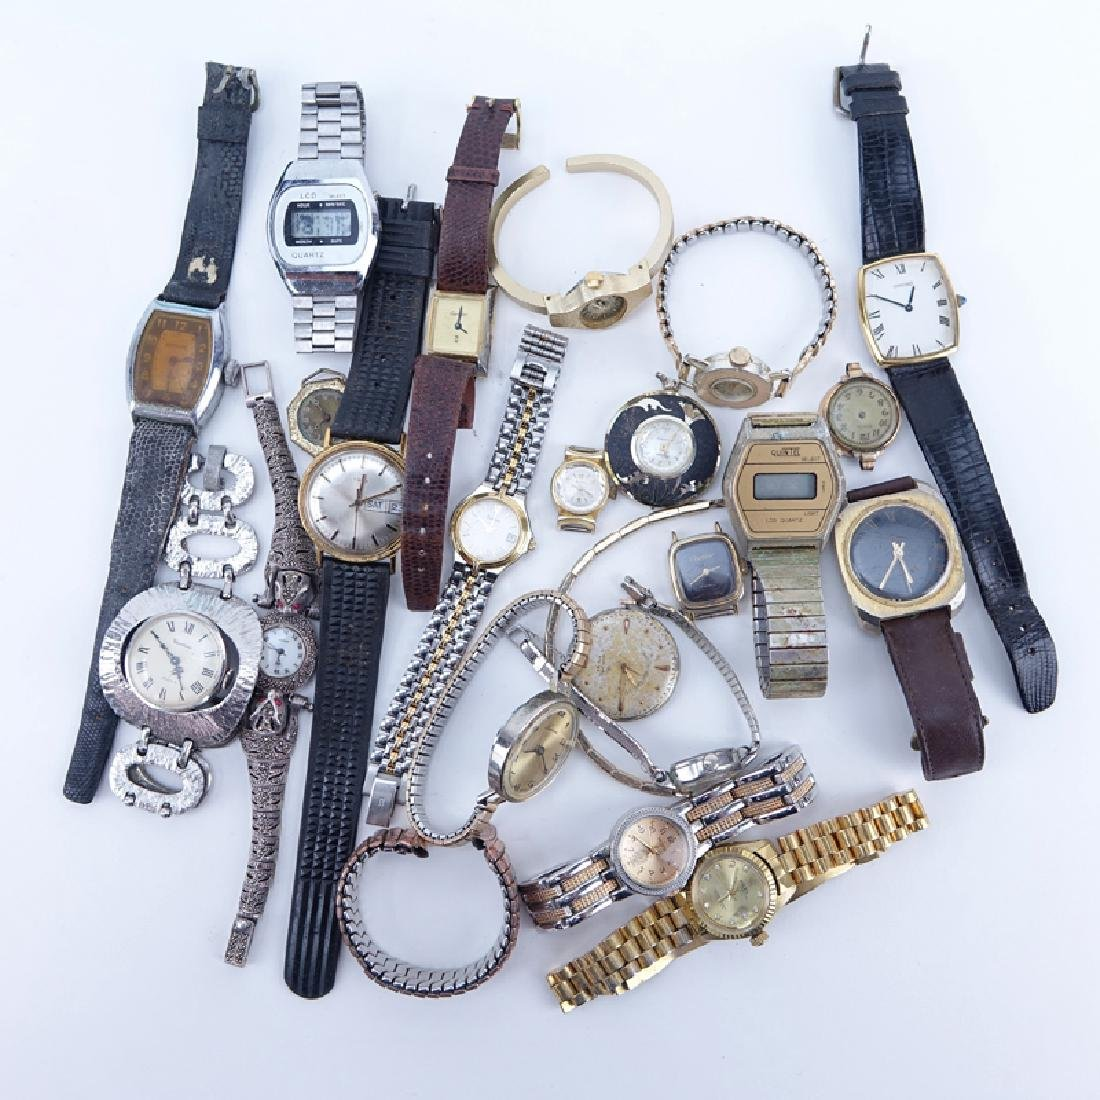 Collection of Vintage Watches, Pocket Watches, and